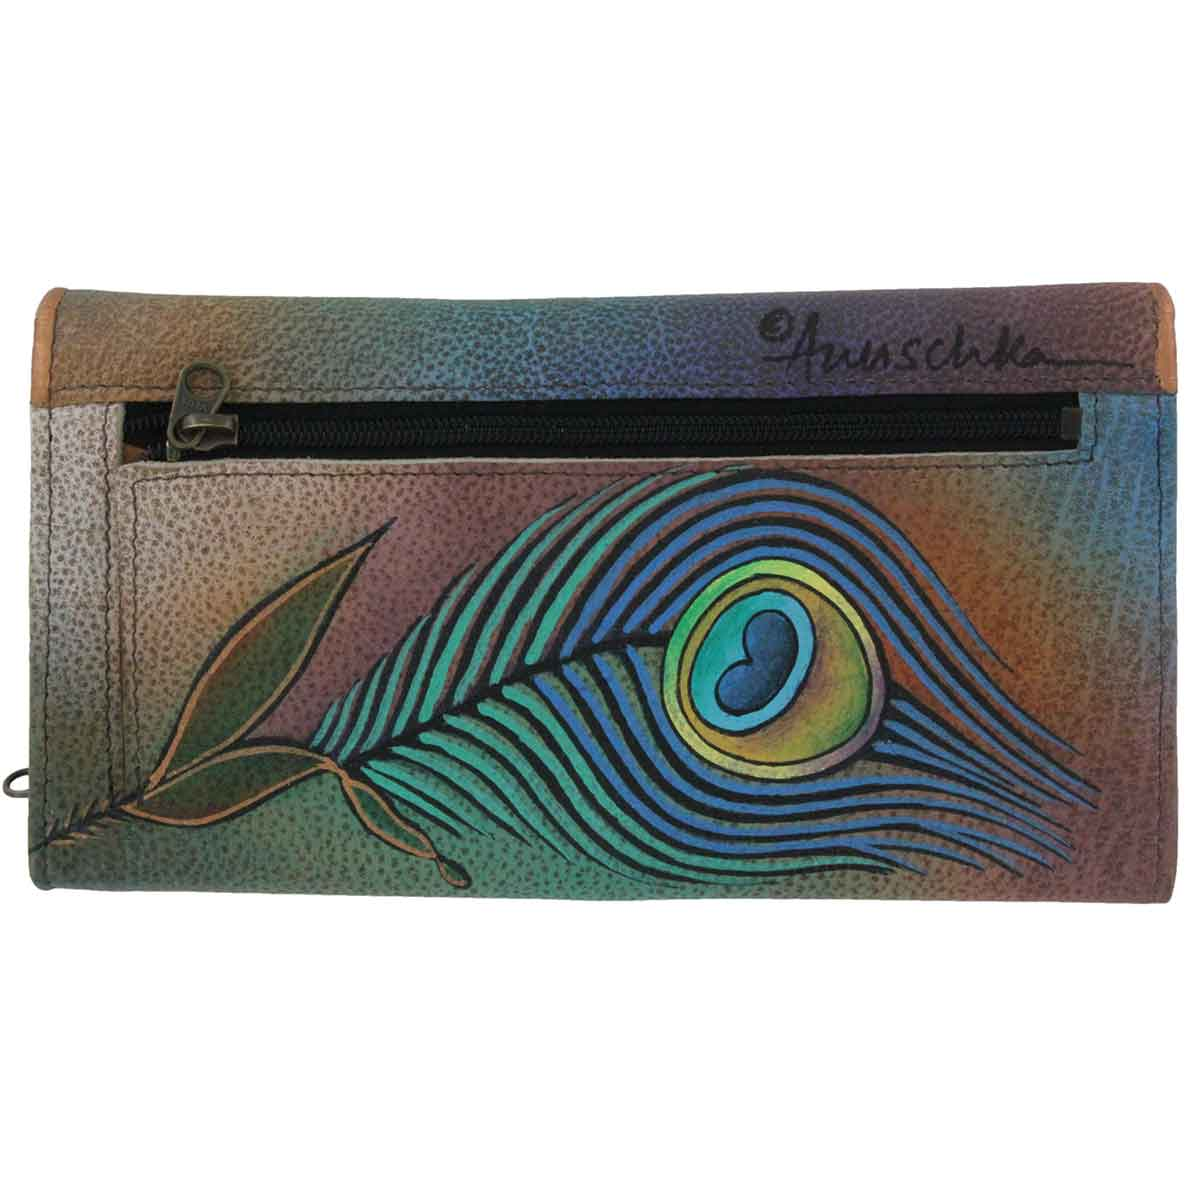 Printed leather Peacock Lily wallet